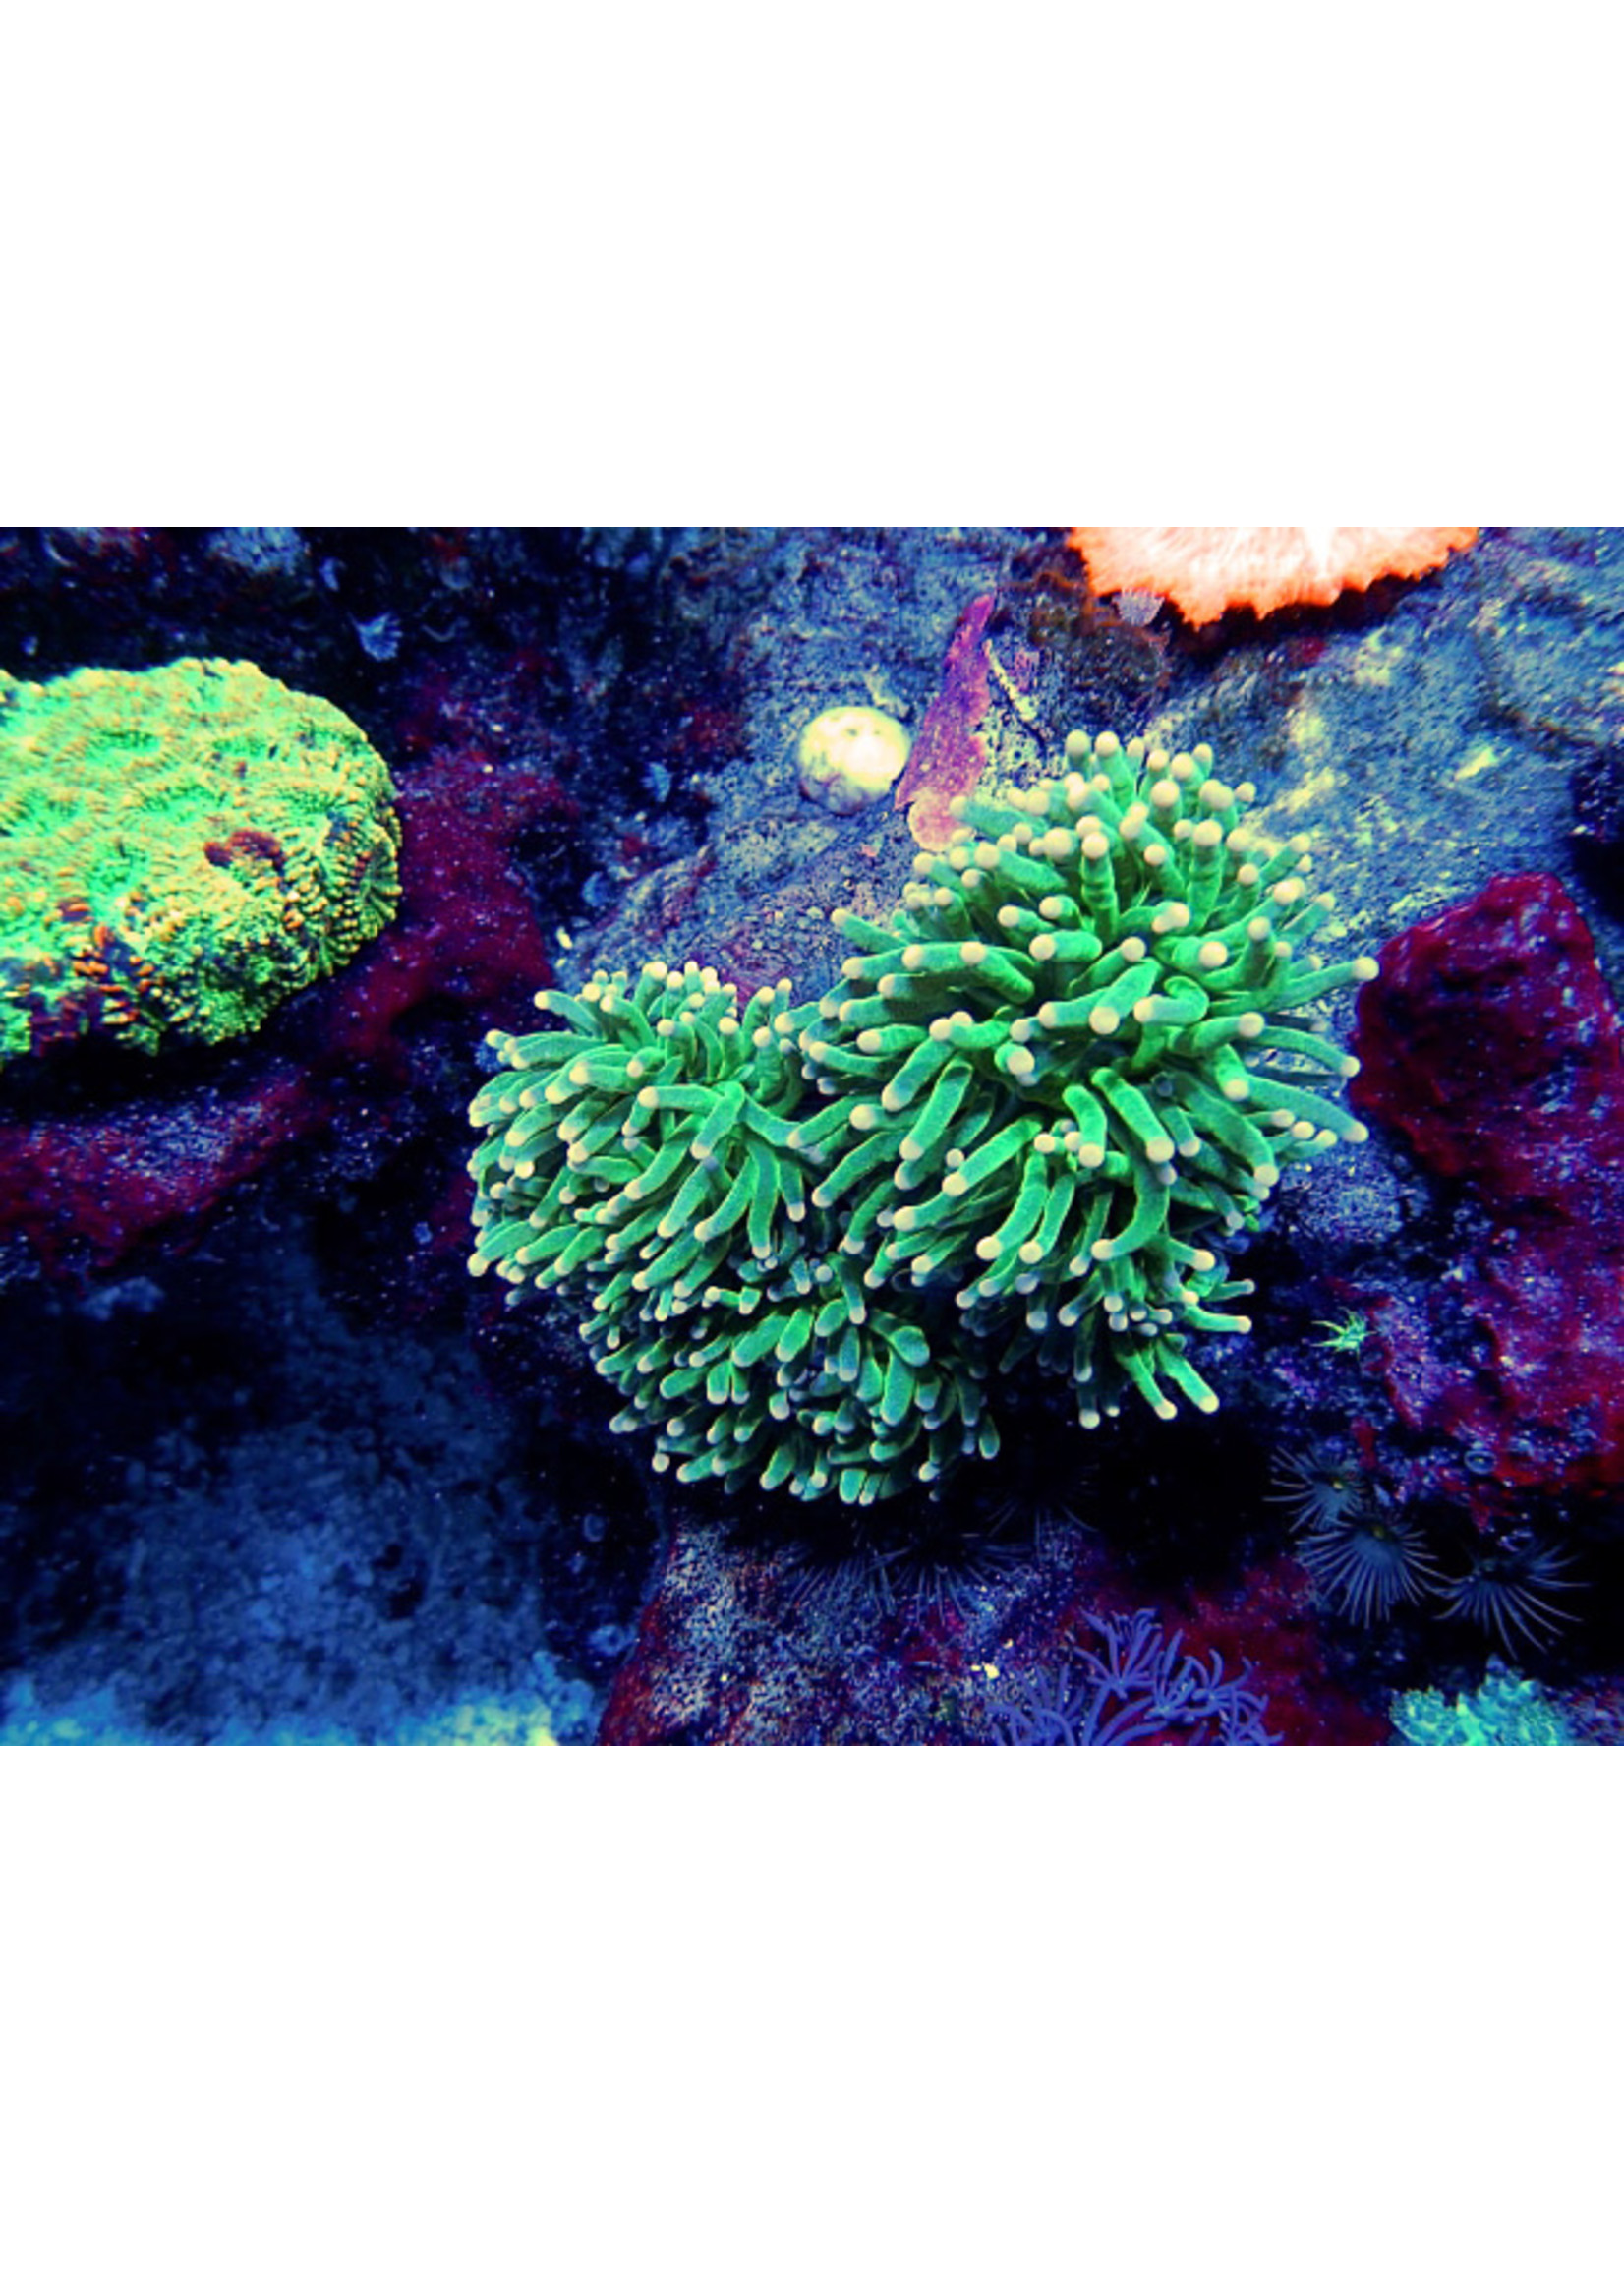 Indo Pink Tip Torch Coral  WYSIWYG